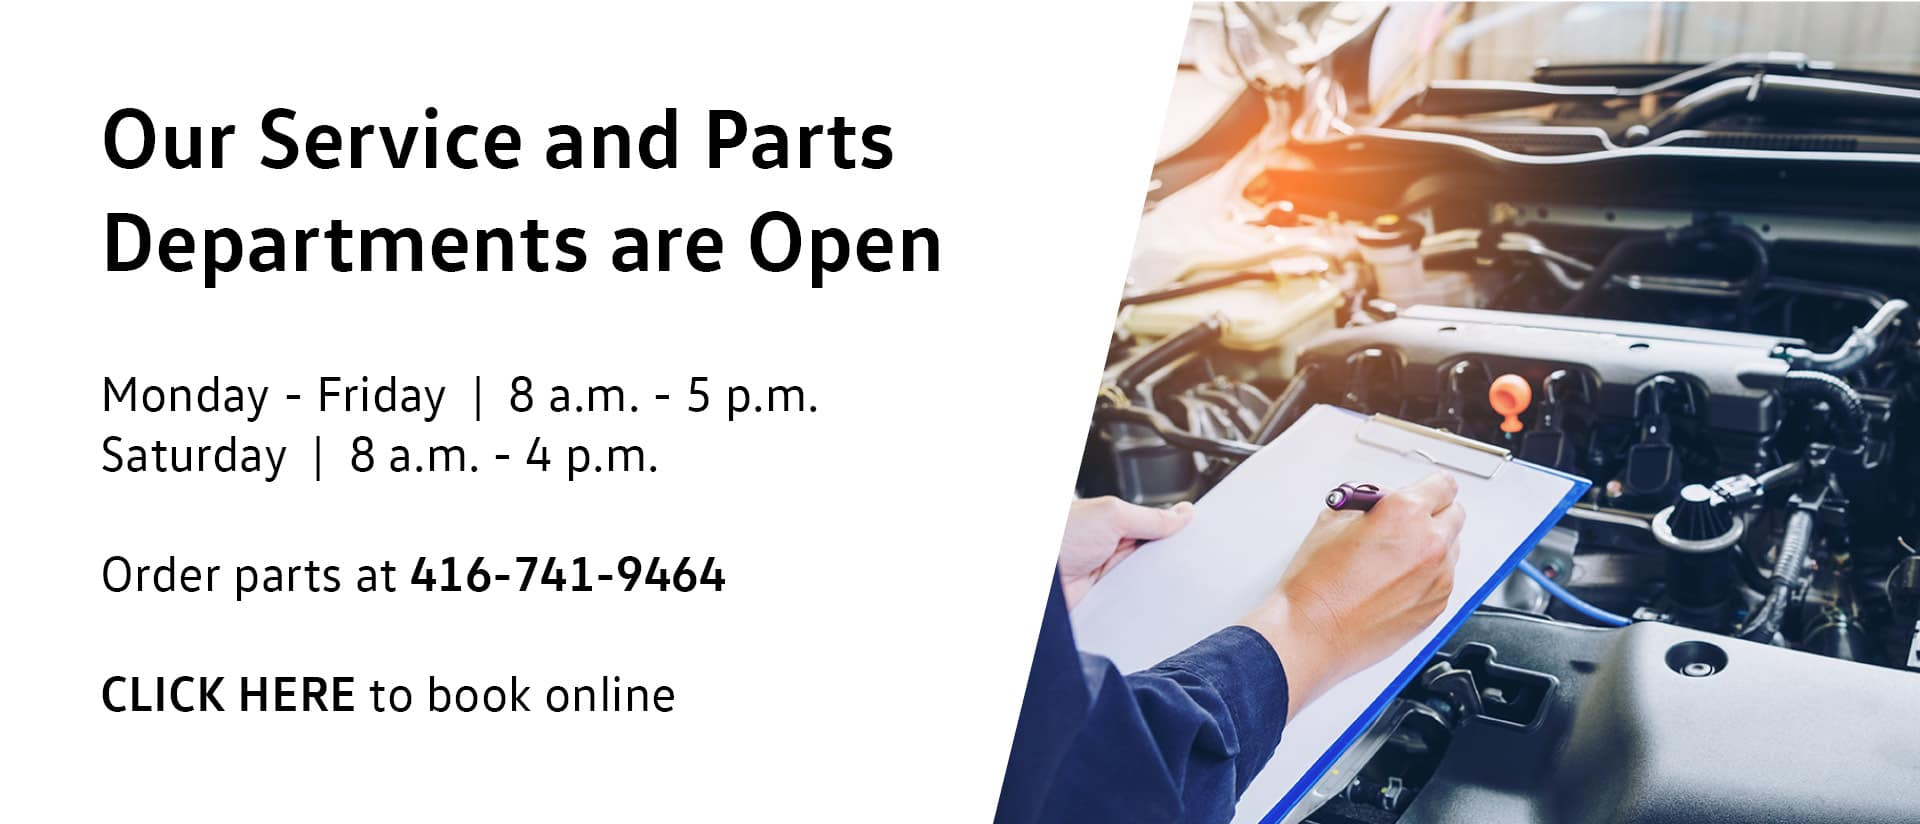 Parts and Service Open Banner